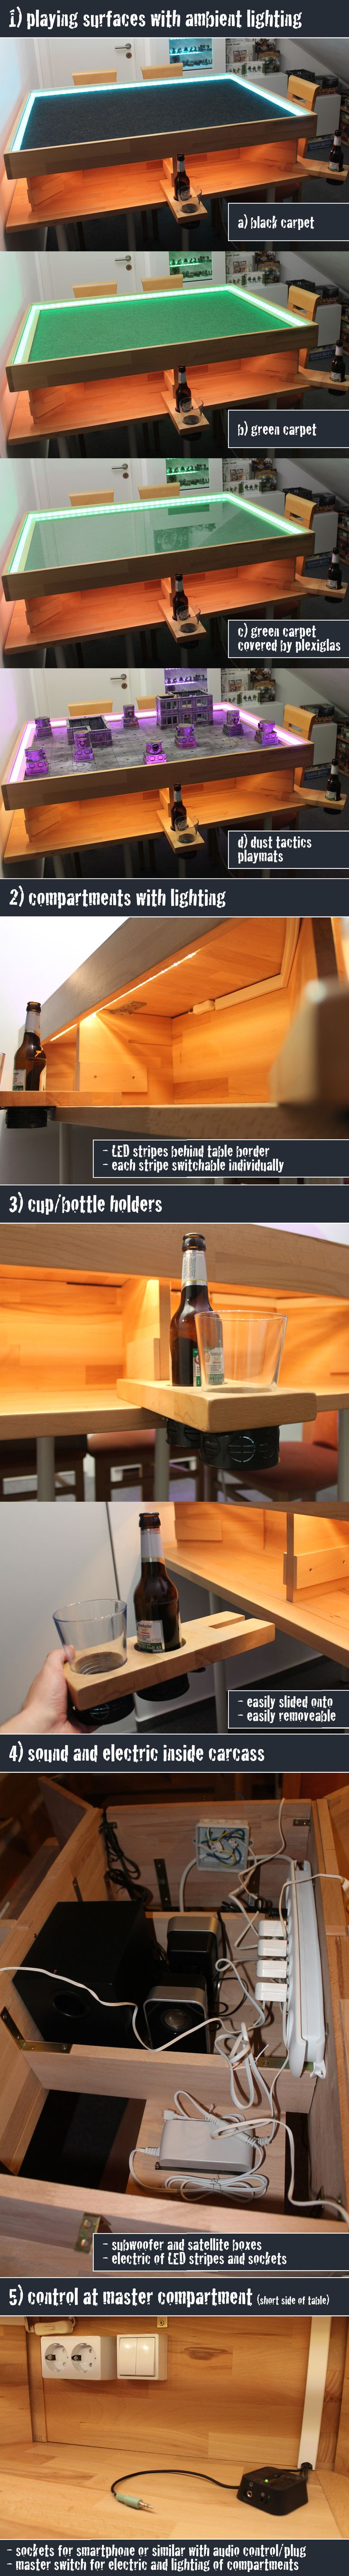 Gaming table for small room with light and sound - instructions included | BoardGameGeek | BoardGameGeek